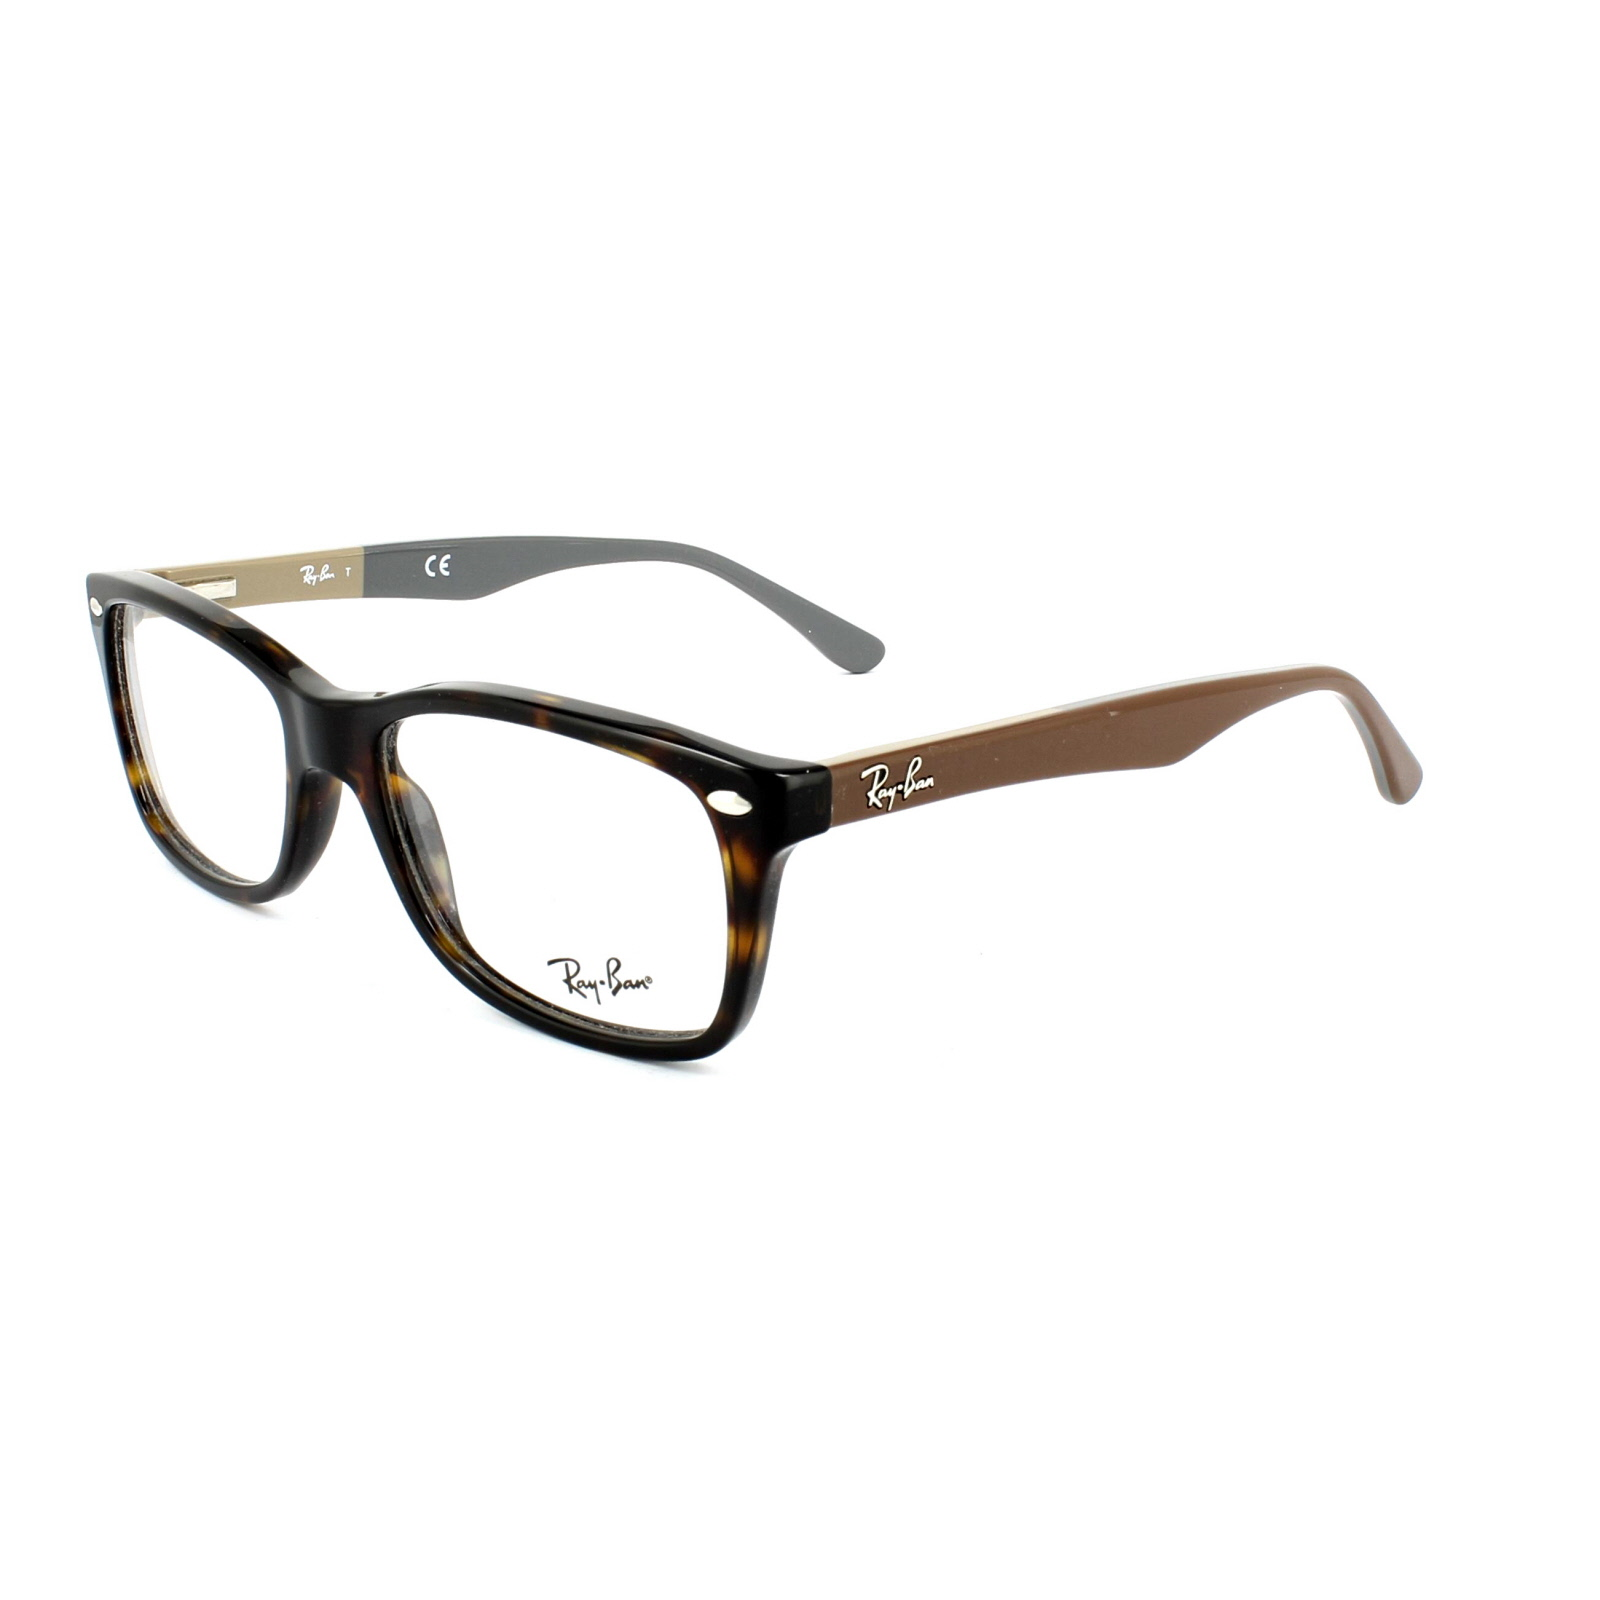 cdf7366e86 Sentinel Ray-Ban Glasses Frames 5228 5545 Havana   Brown on Beige Grey